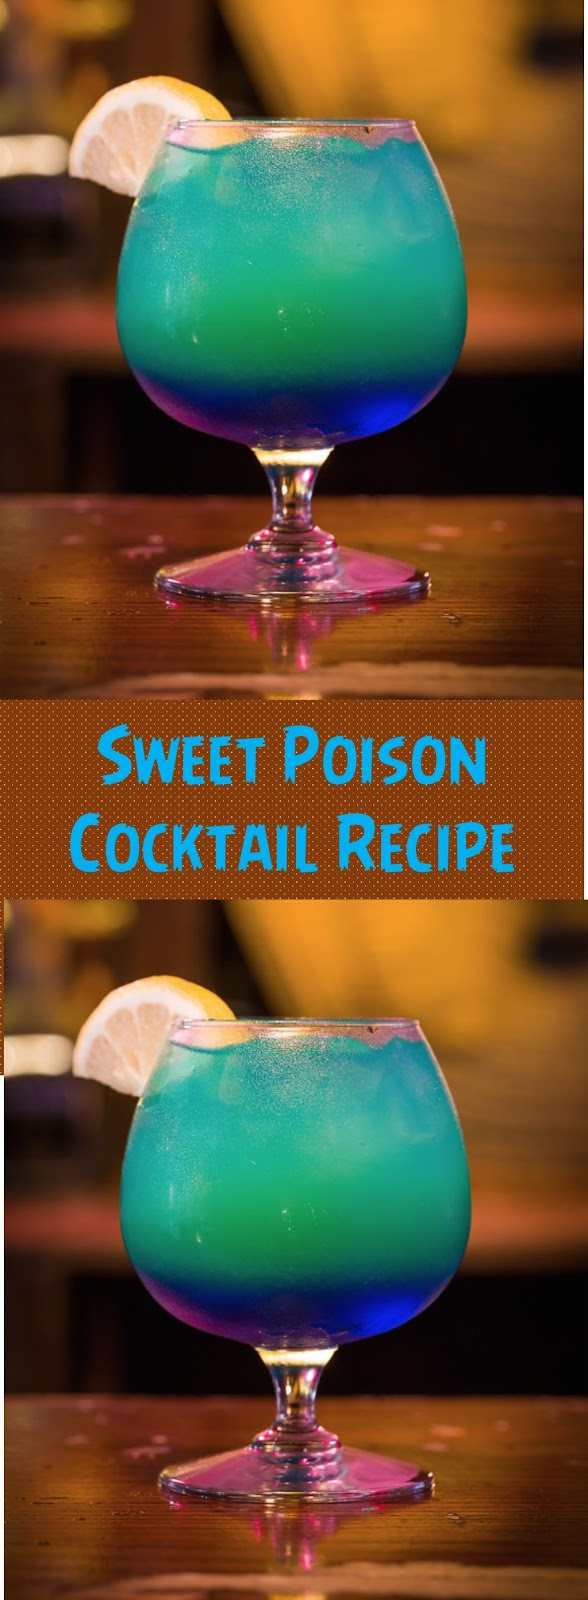 Sweet Poison Cocktail Recipe